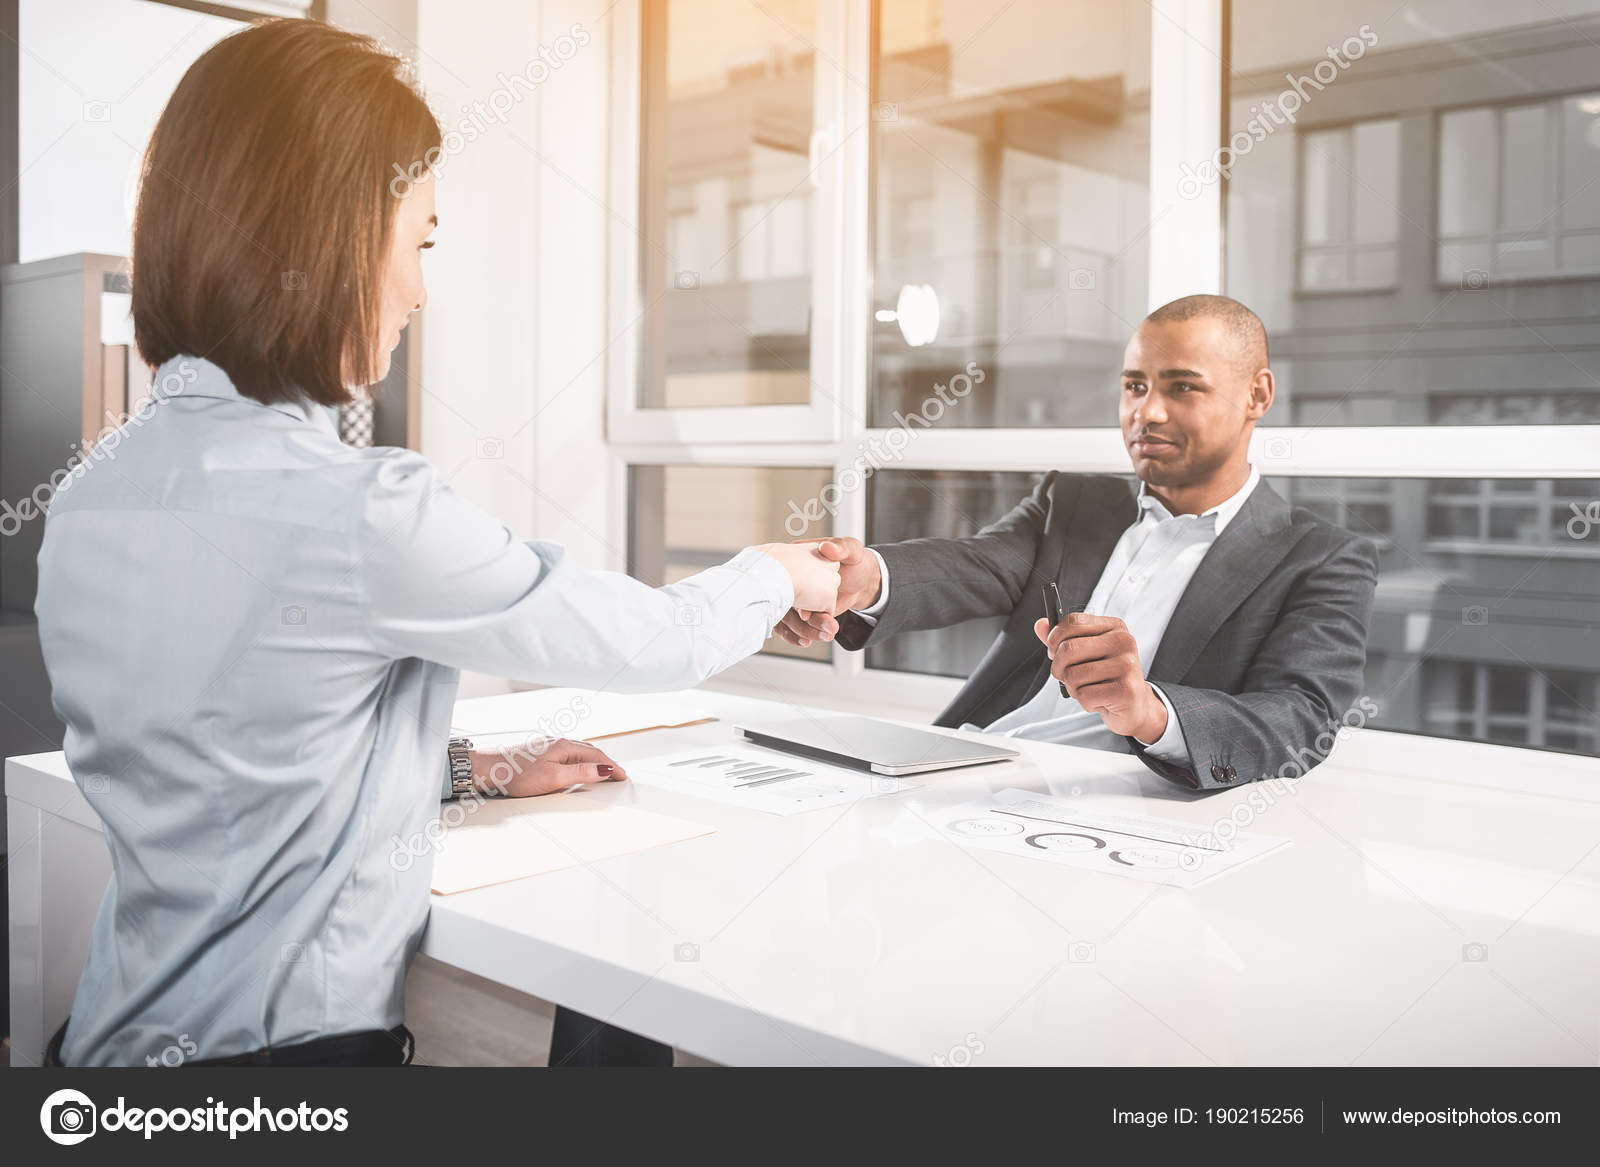 Respectable Businessman Coming To Agreement With Business Lady